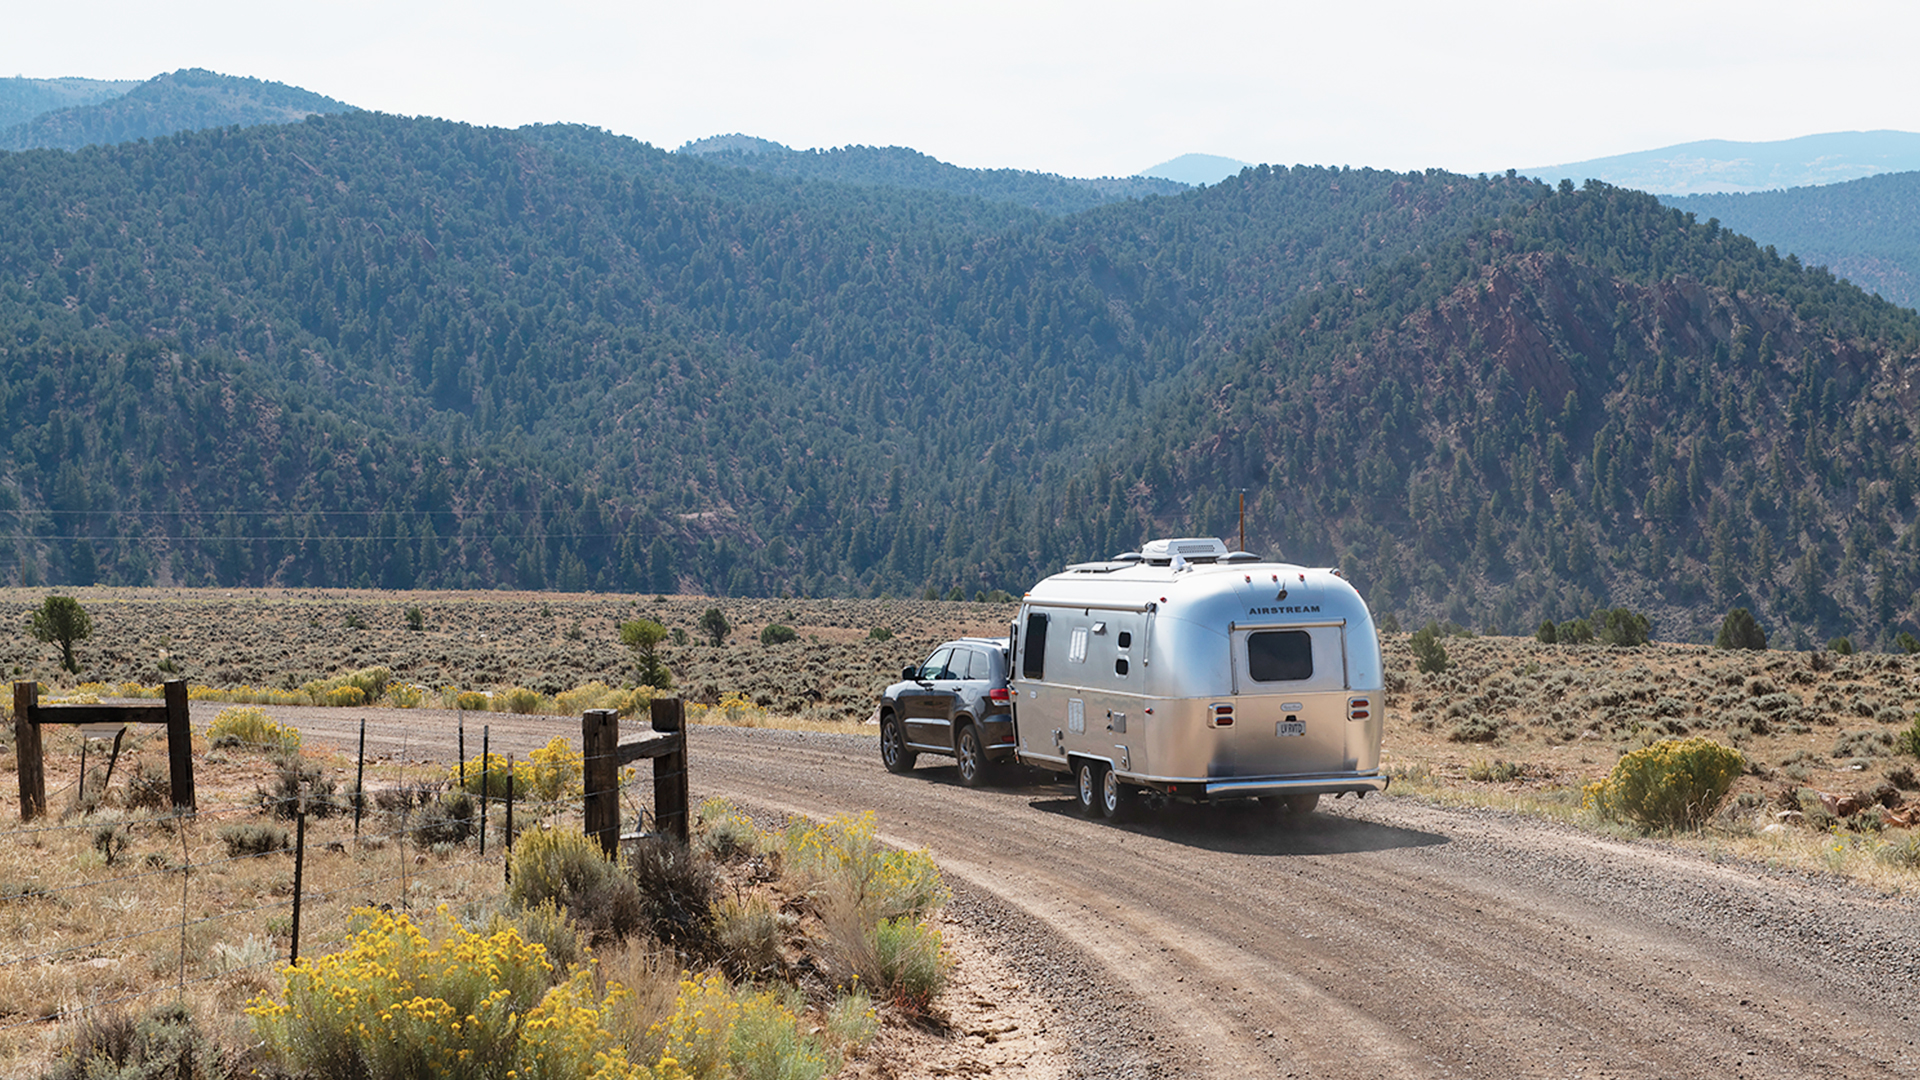 Airstream-Travel-Trailer-with-Mountains-Driving